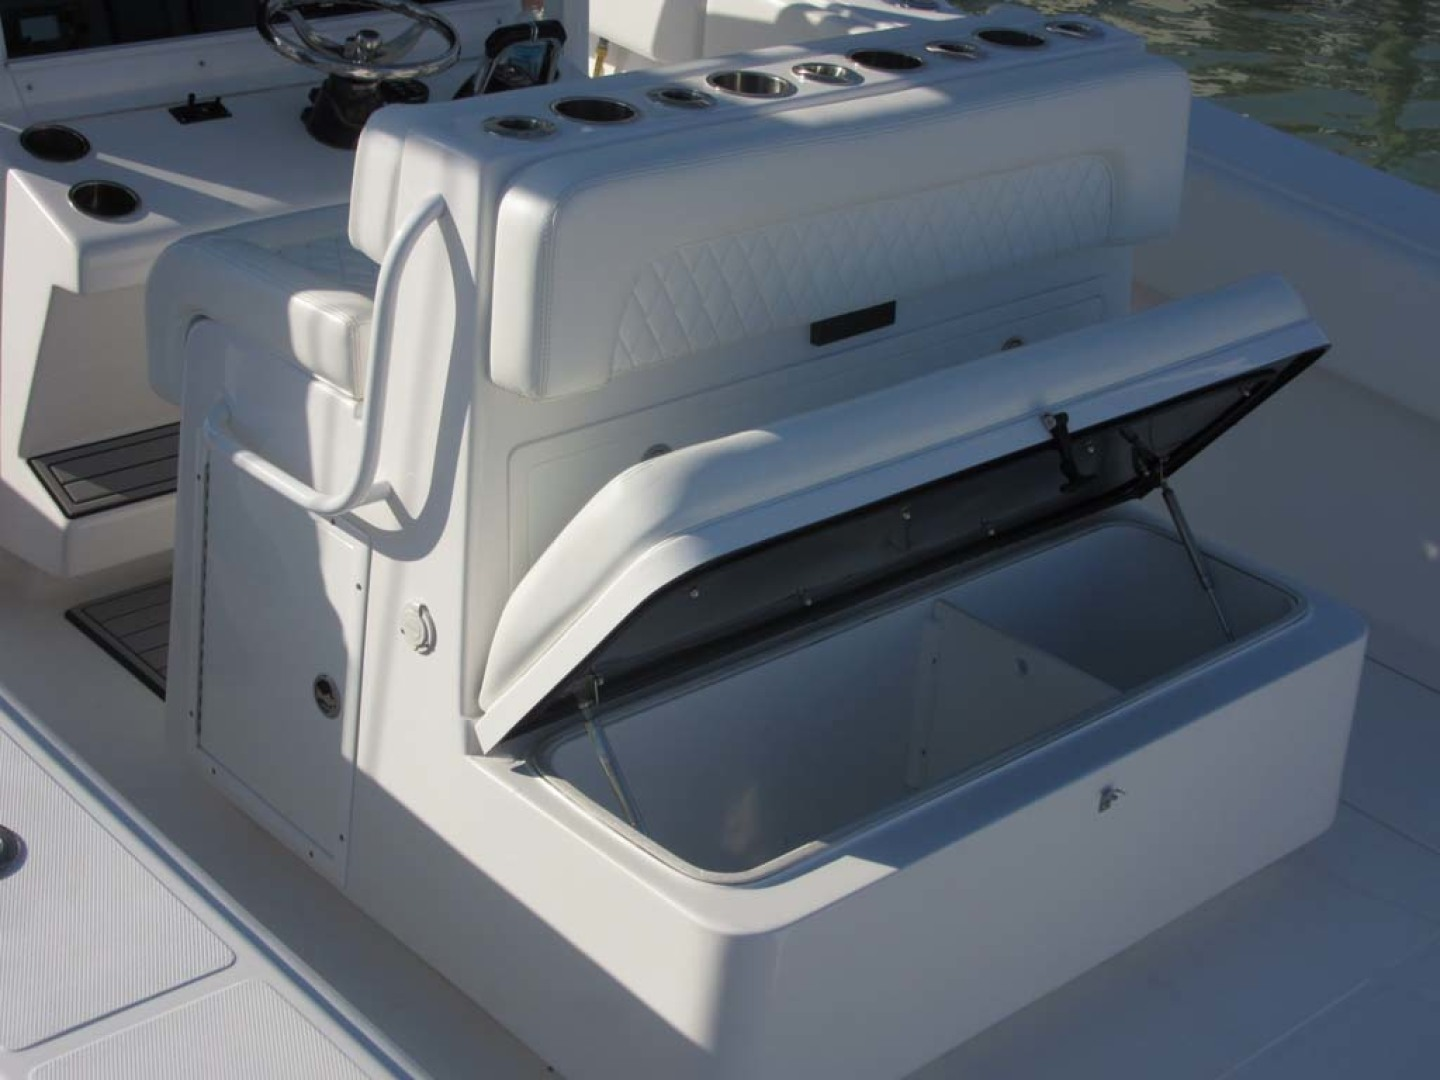 SeaHunter-39 Center Console 2017-SQUEEZE PLAY II Madeira Beach-Florida-United States-Cooler Seat-1117902 | Thumbnail